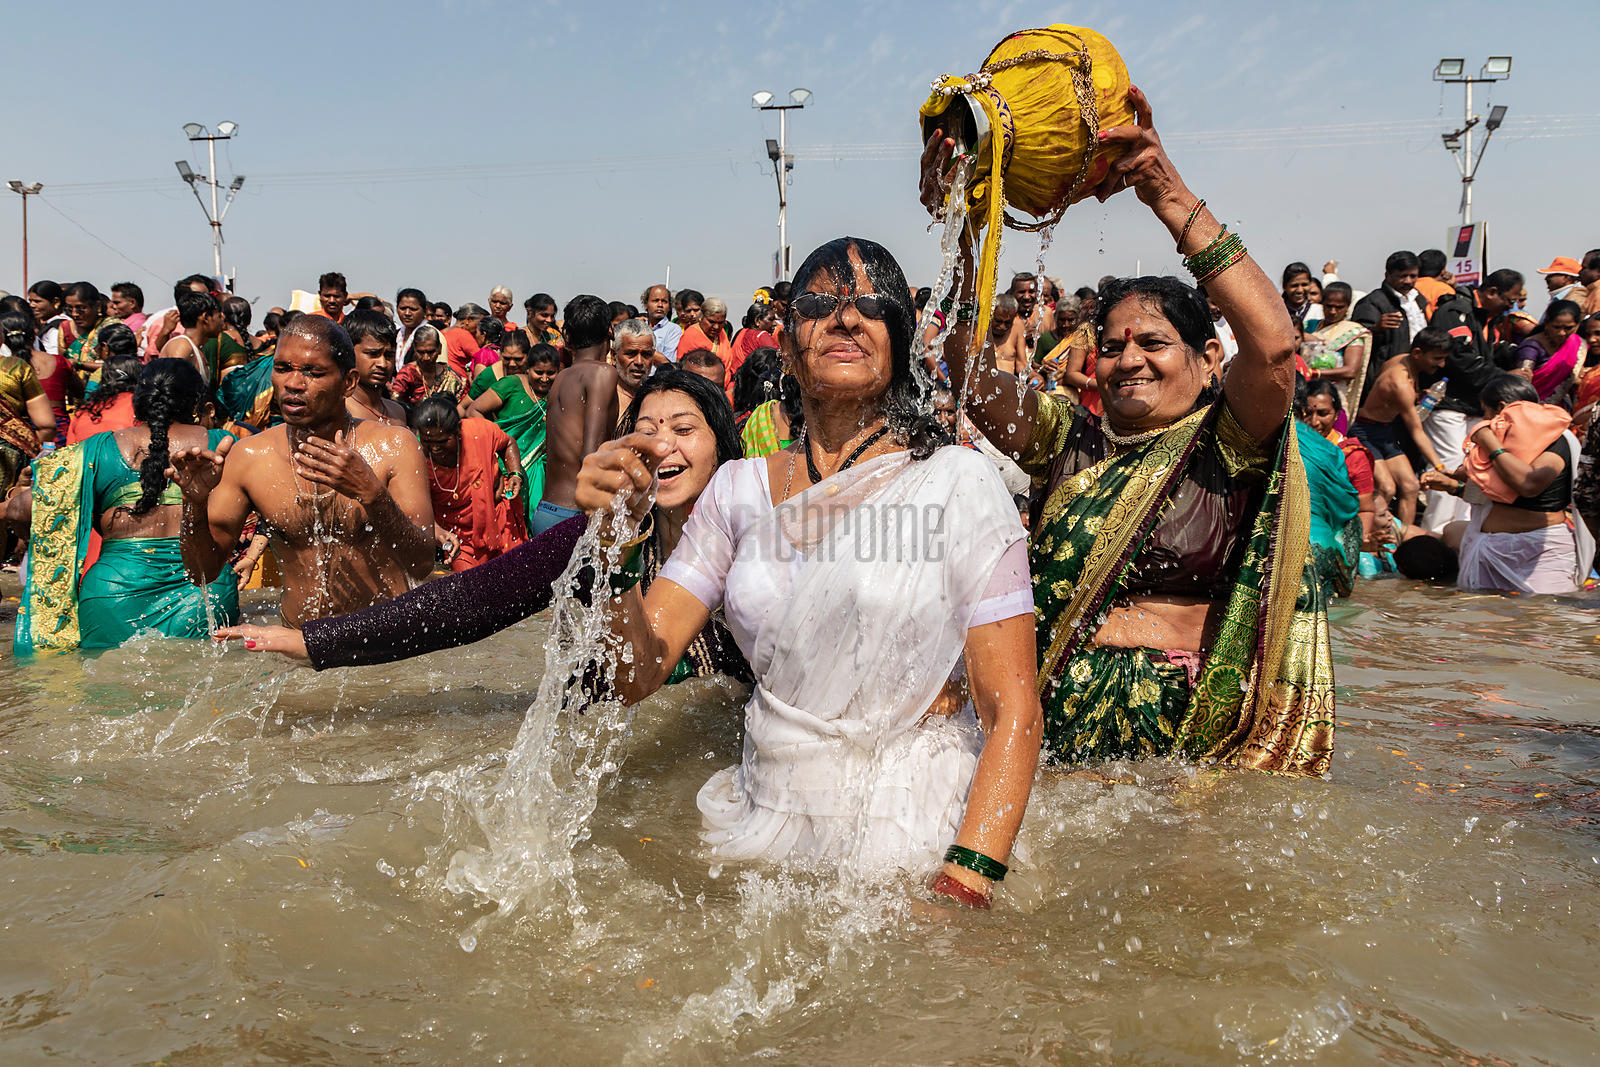 Pilgrims Revel in Bathing in the Ganges at the Sangam